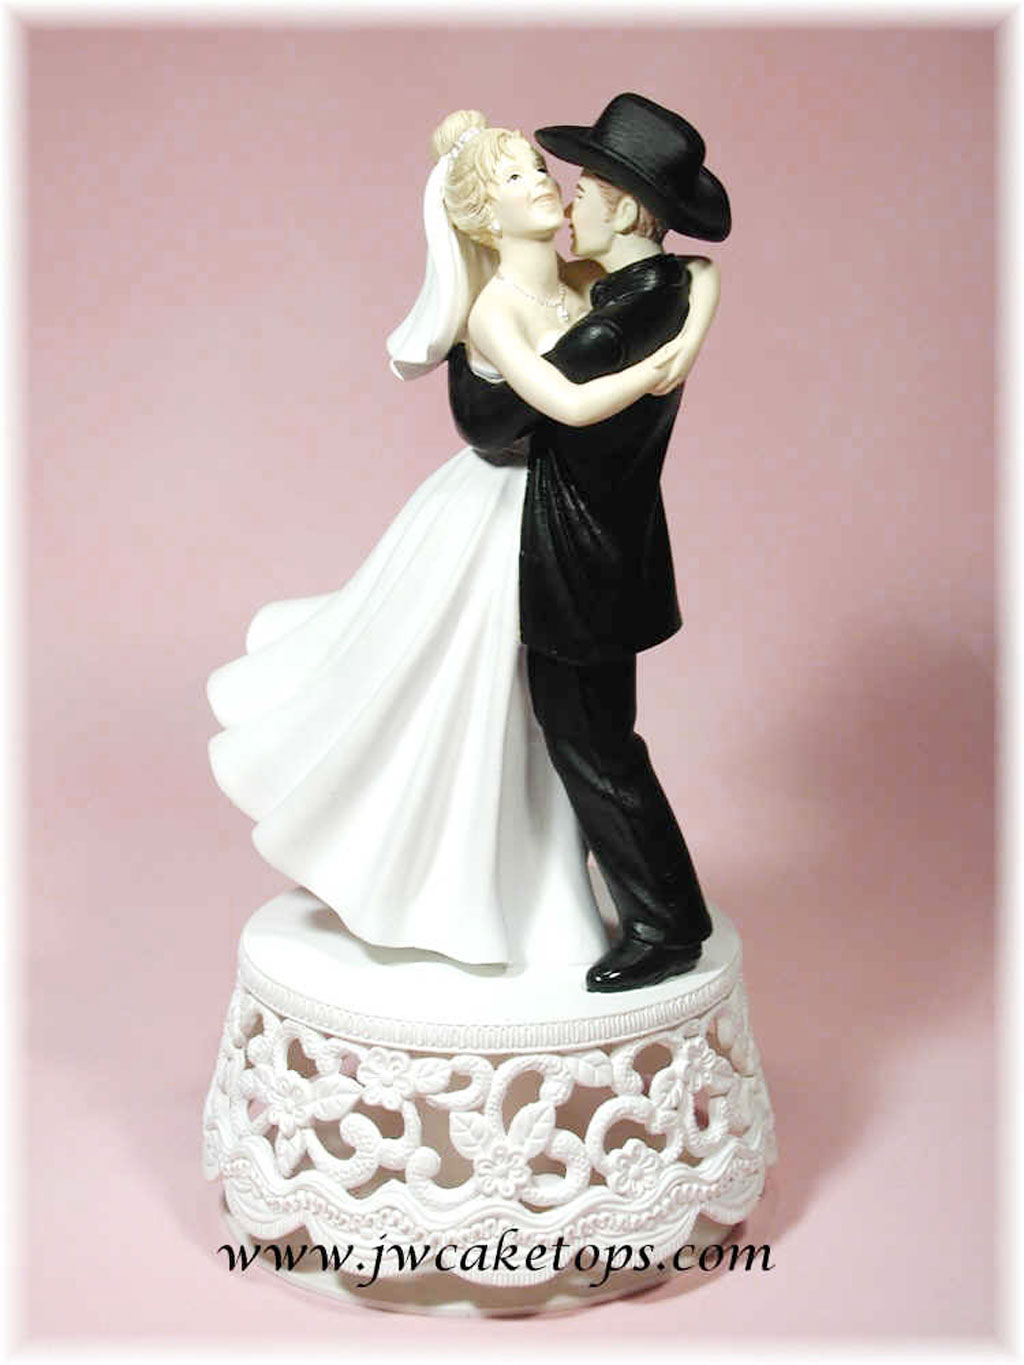 Western Wedding Cake Toppers Cheap Wedding Cake Cake